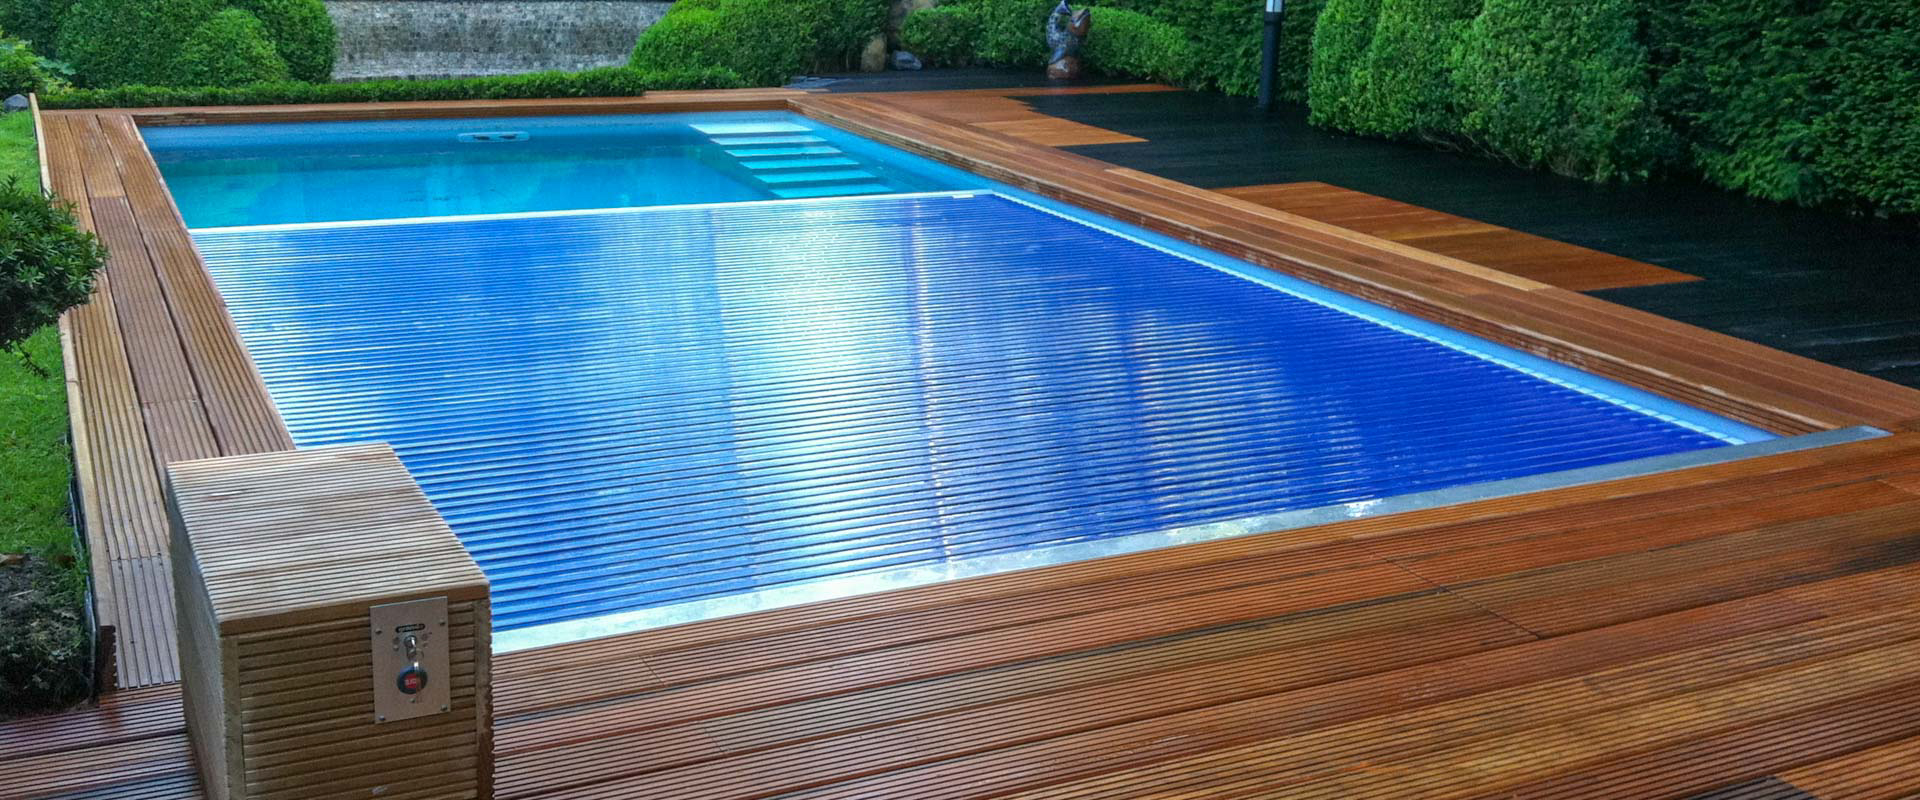 Automatic rigid pool cover system type ibs 9 grando for Automatic pool cover motor replacement